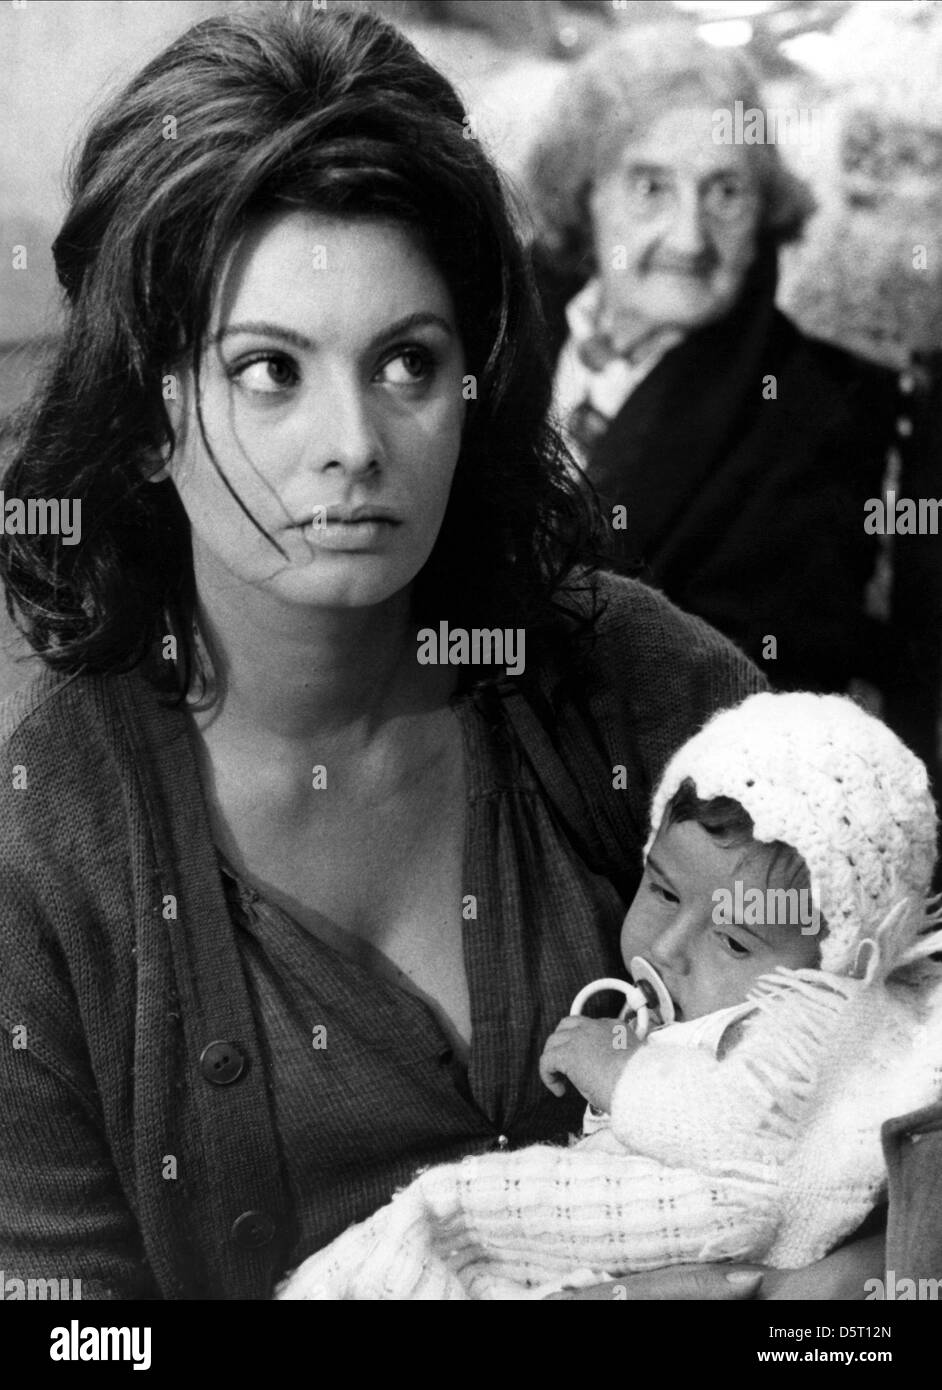 Sophia Loren Baby Yesterday Today And Tomorrow 1963 Stock Photo Alamy